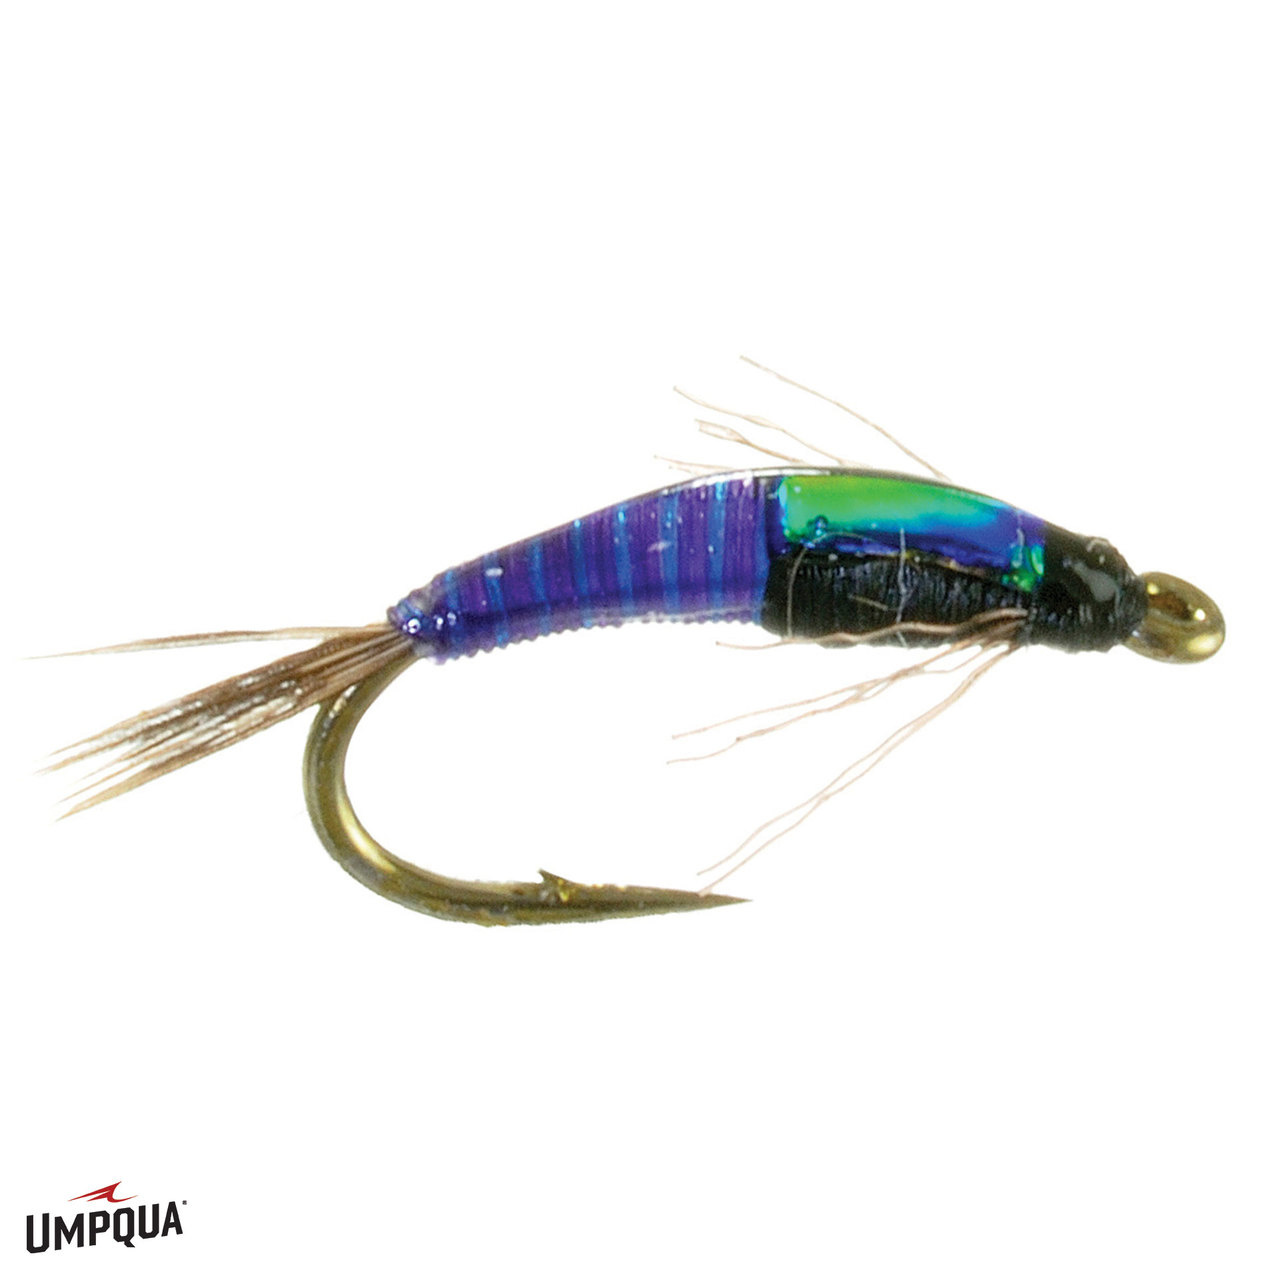 Umpqua Juju Beatis  Regular